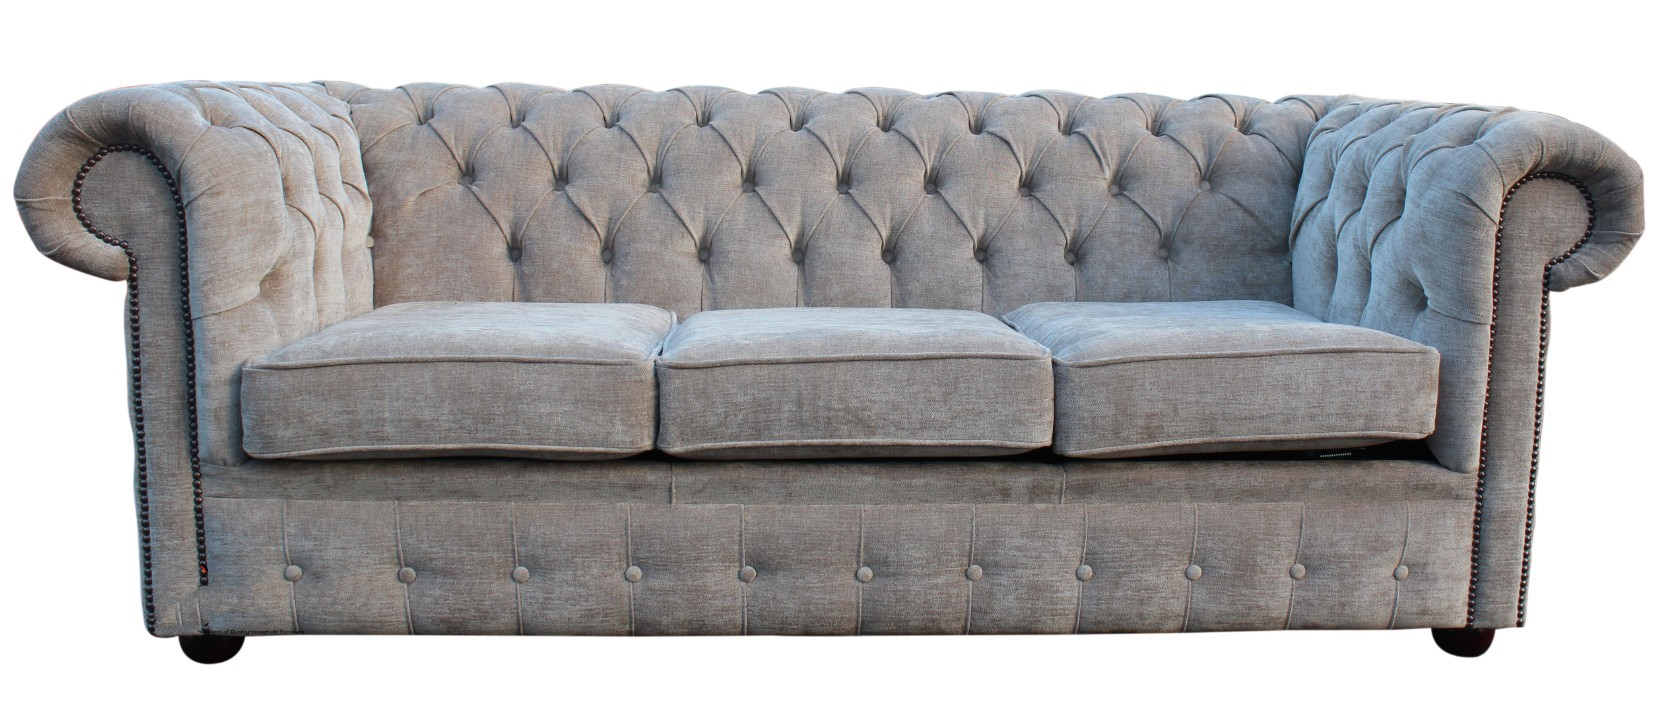 buy mink coloured fabric chesterfield sofa bed online